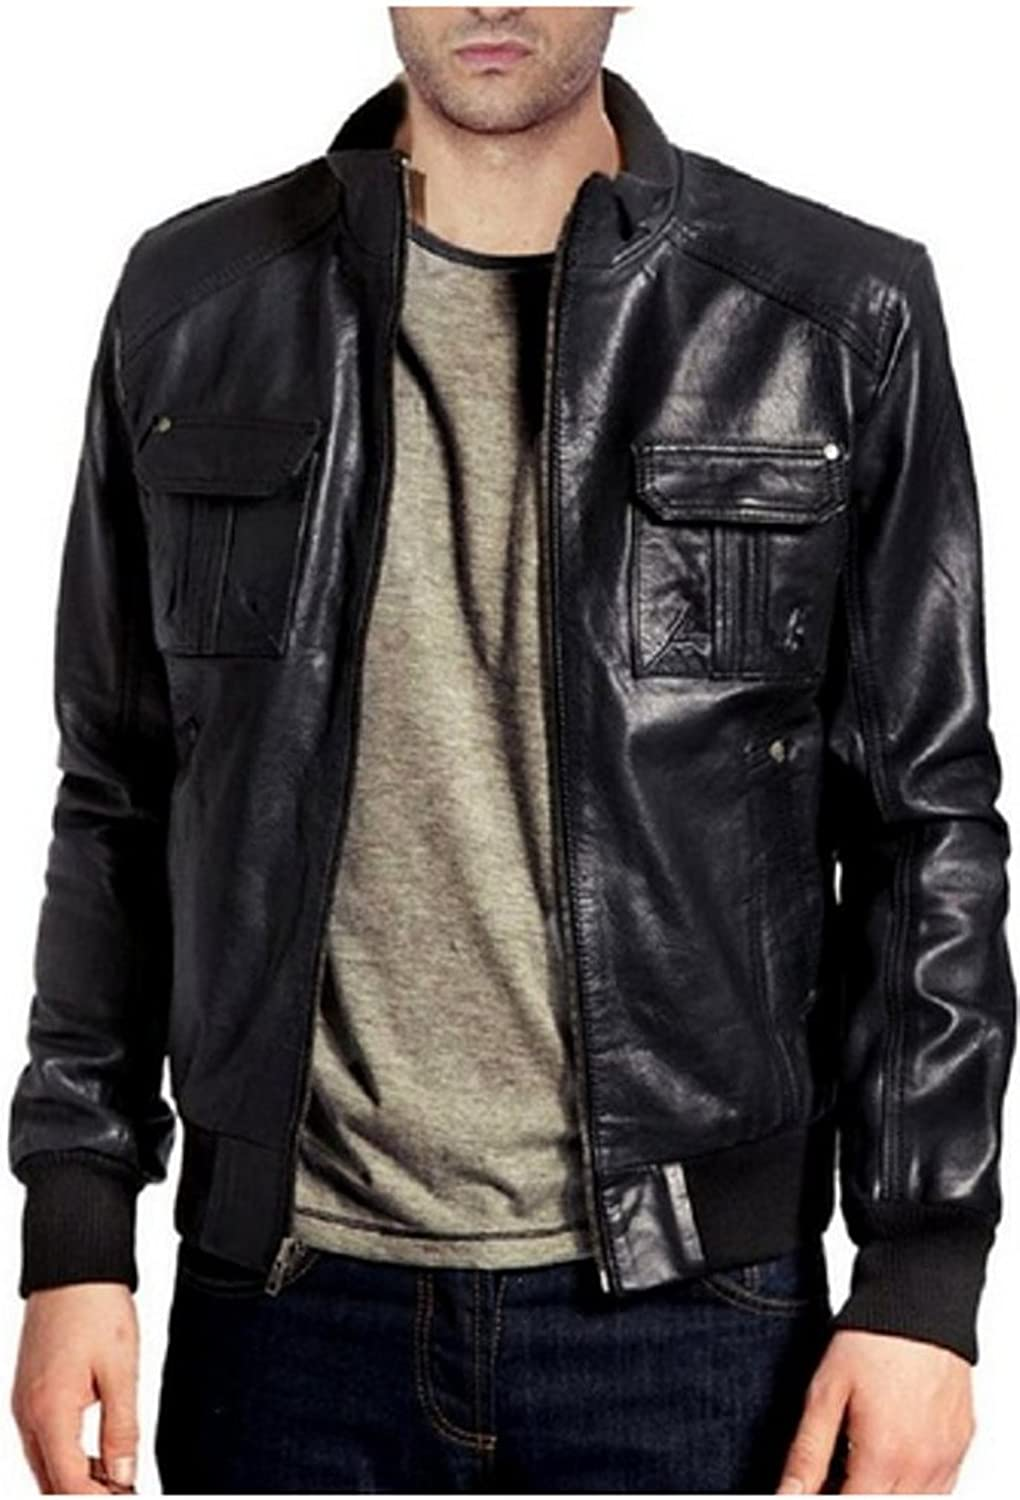 1501127 Laverapelle Mens Genuine Lambskin Leather Jacket Black, Field Jacket